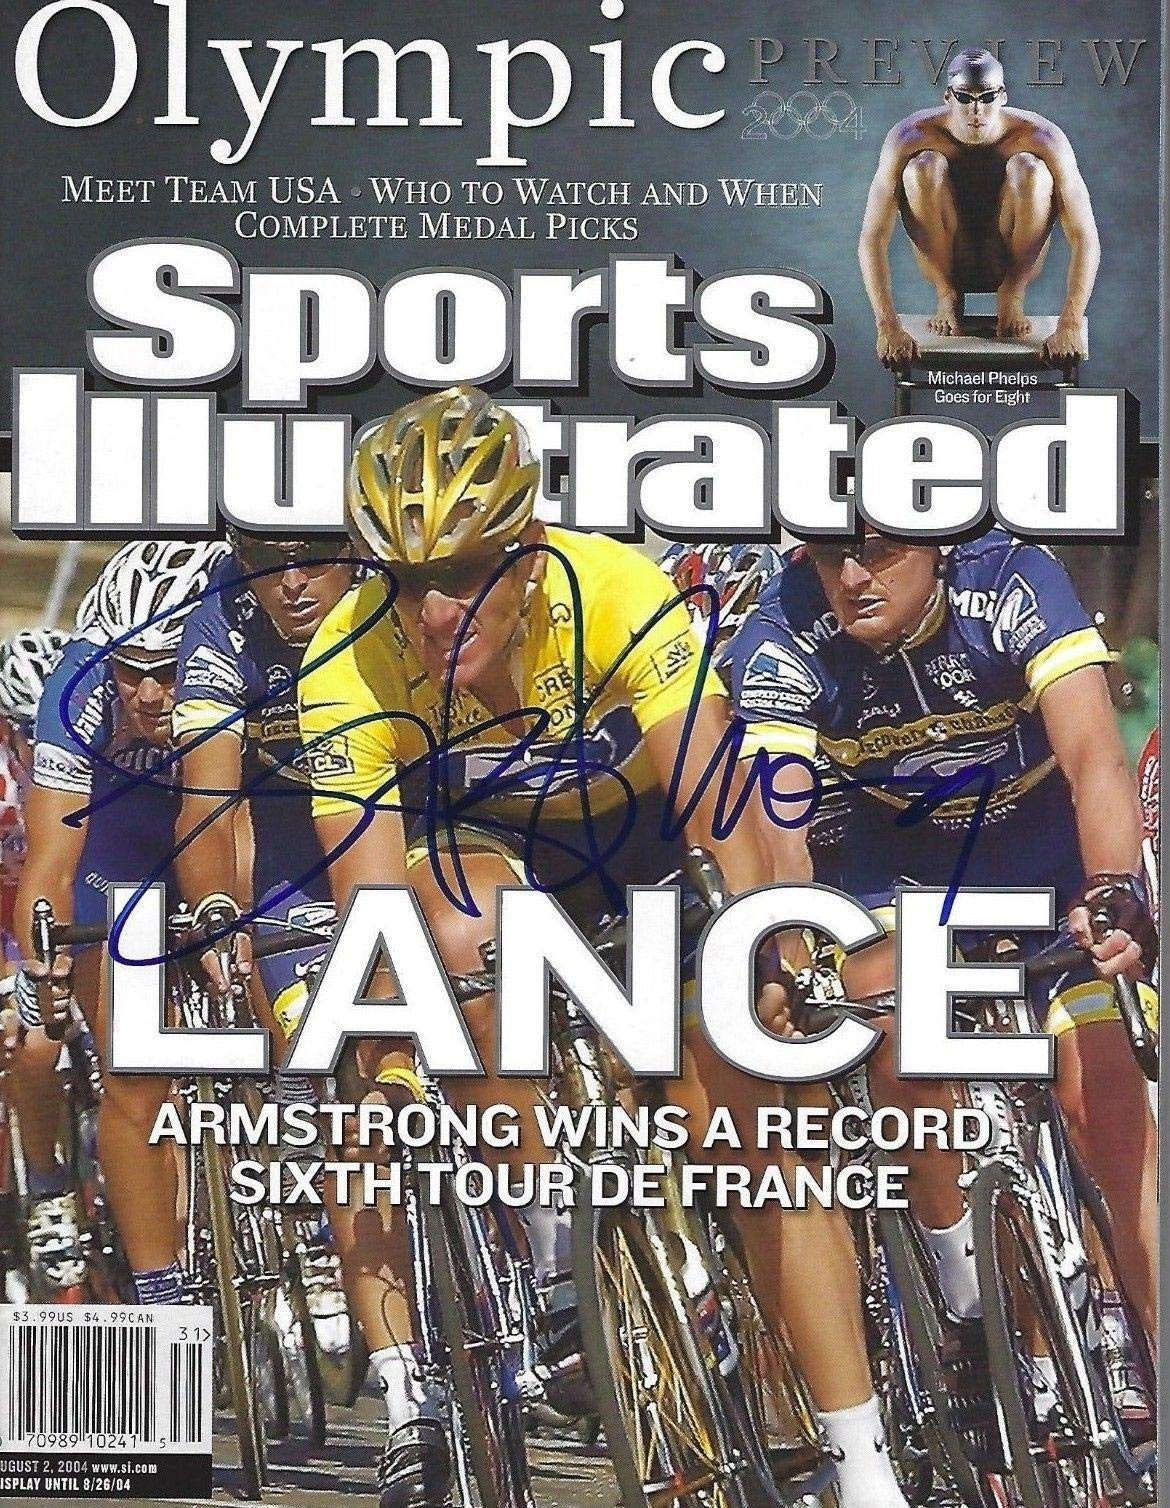 LANCE ARMSTRONG Signed 8/2/04 SPORTS ILLUSTRATED with Schwartz COA (NO LABEL) Autographed Sports Magazines